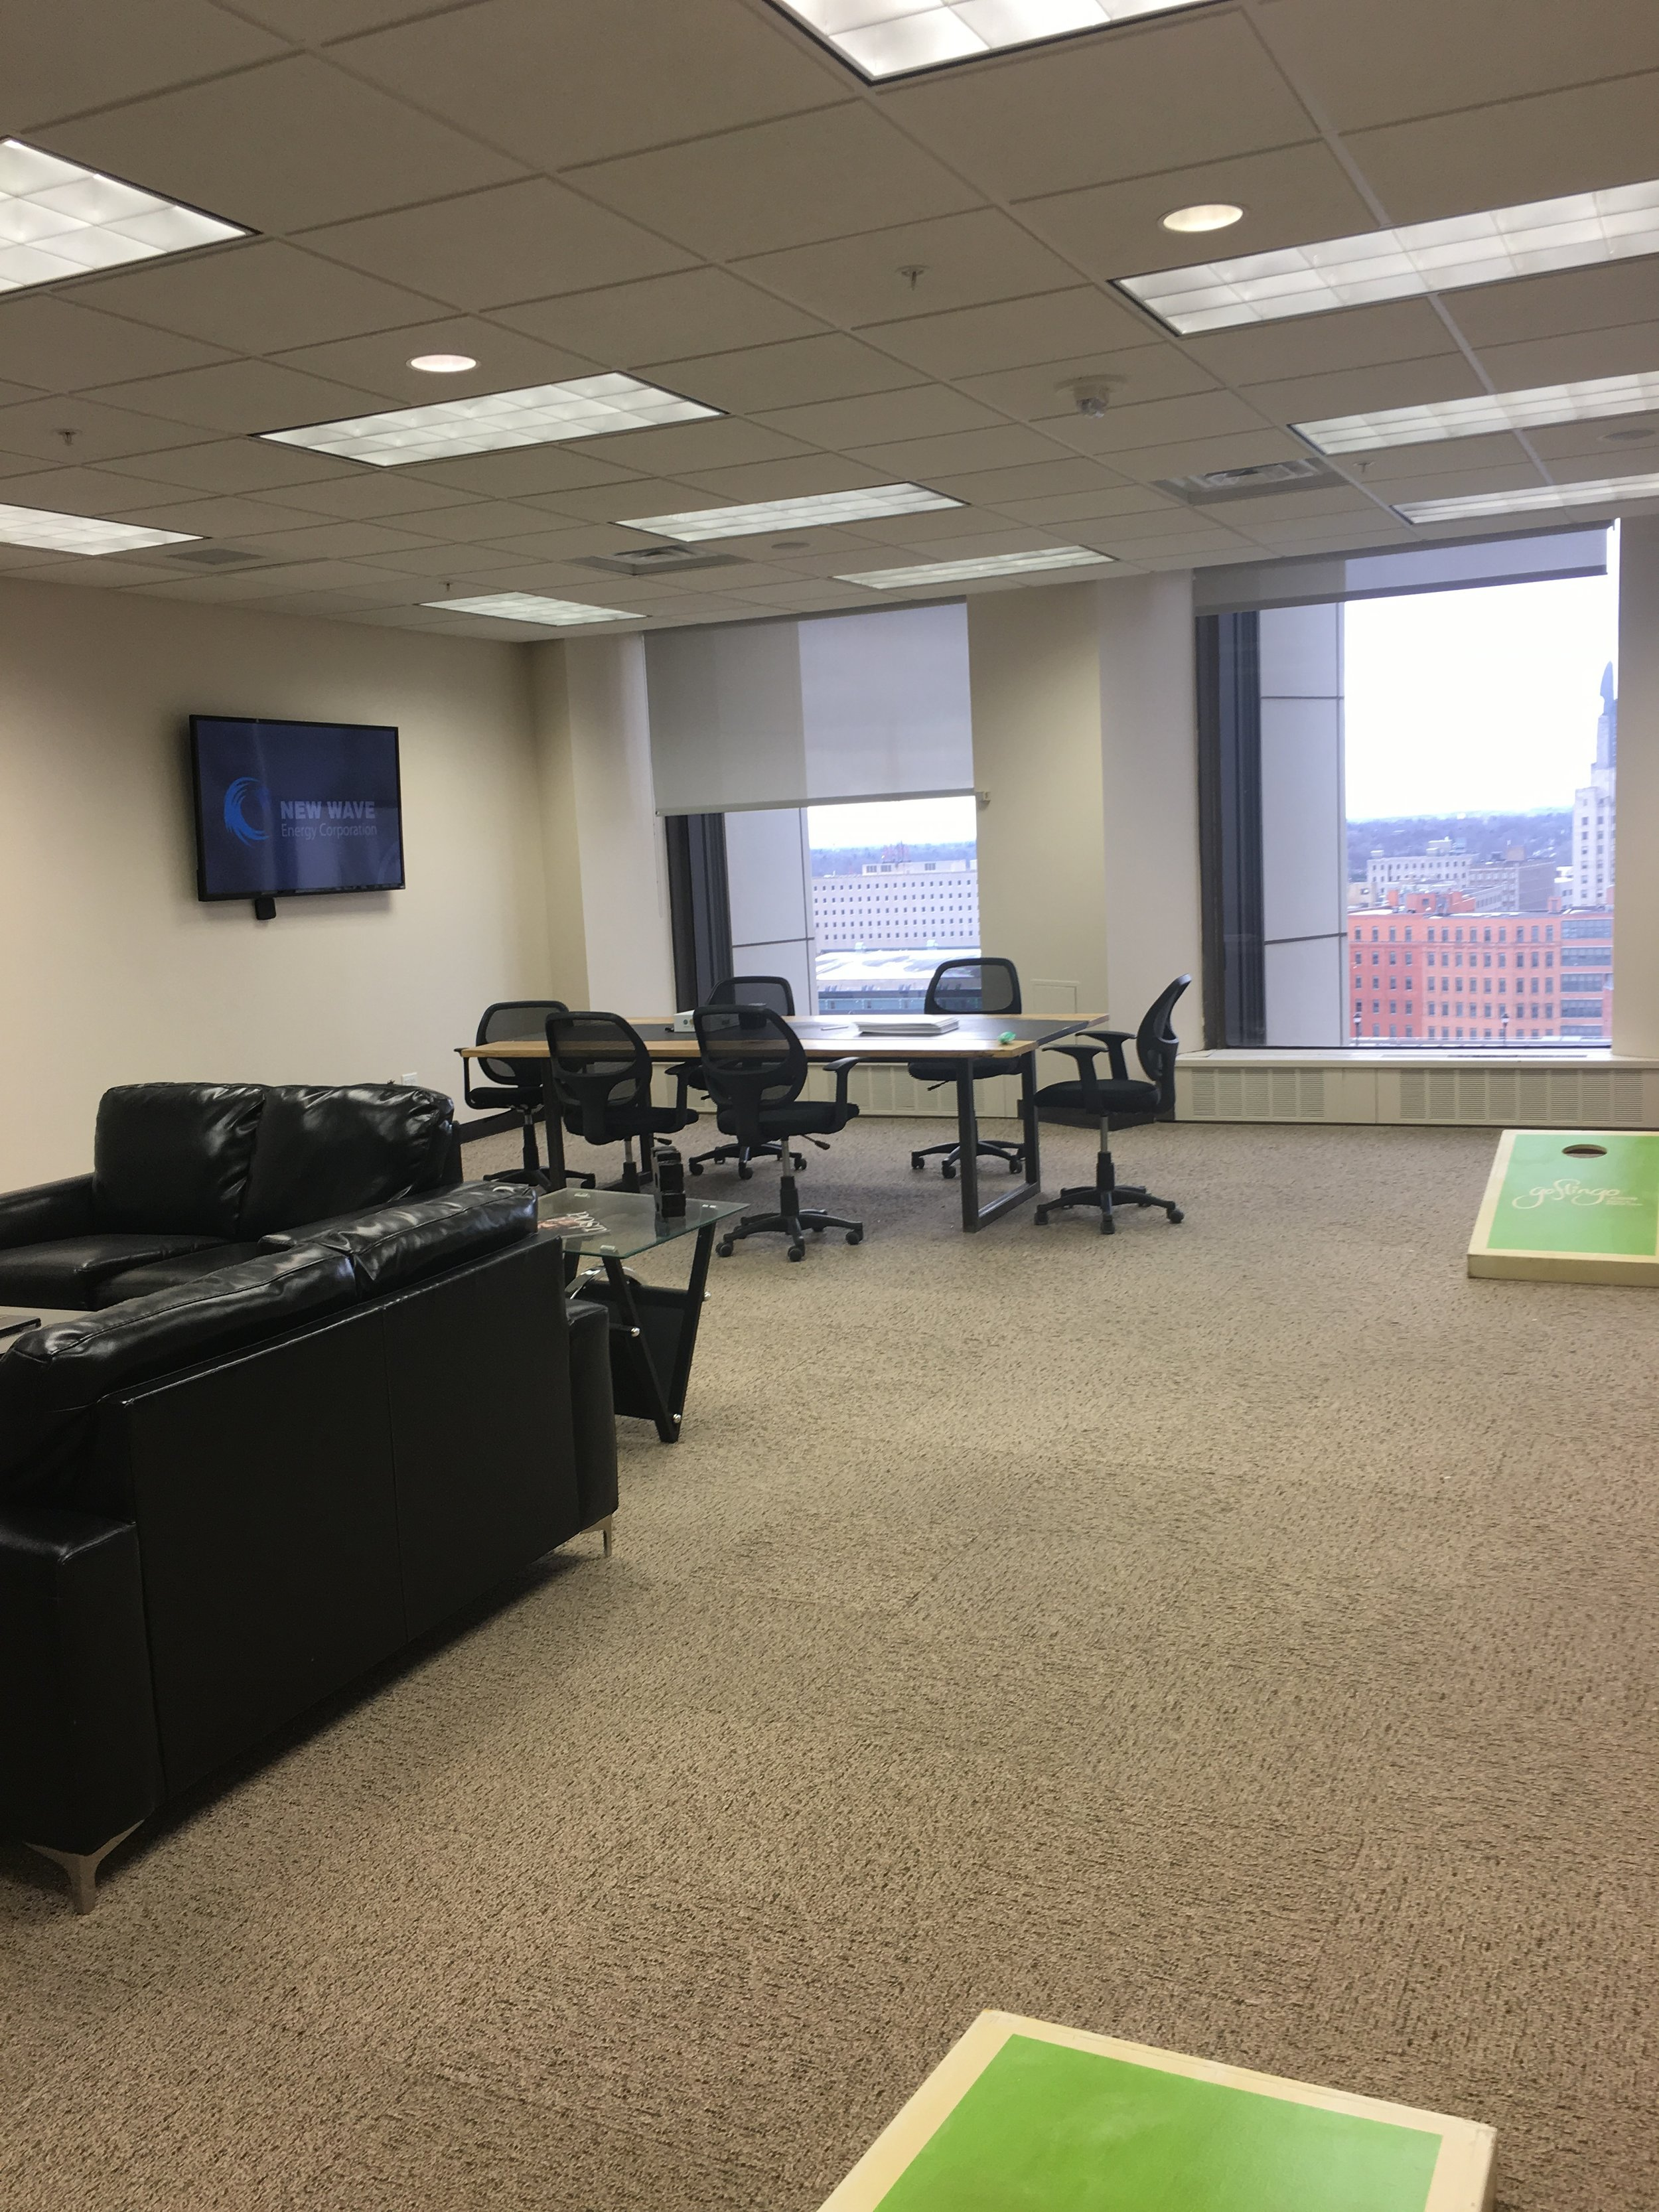 Office Photo with corn hole